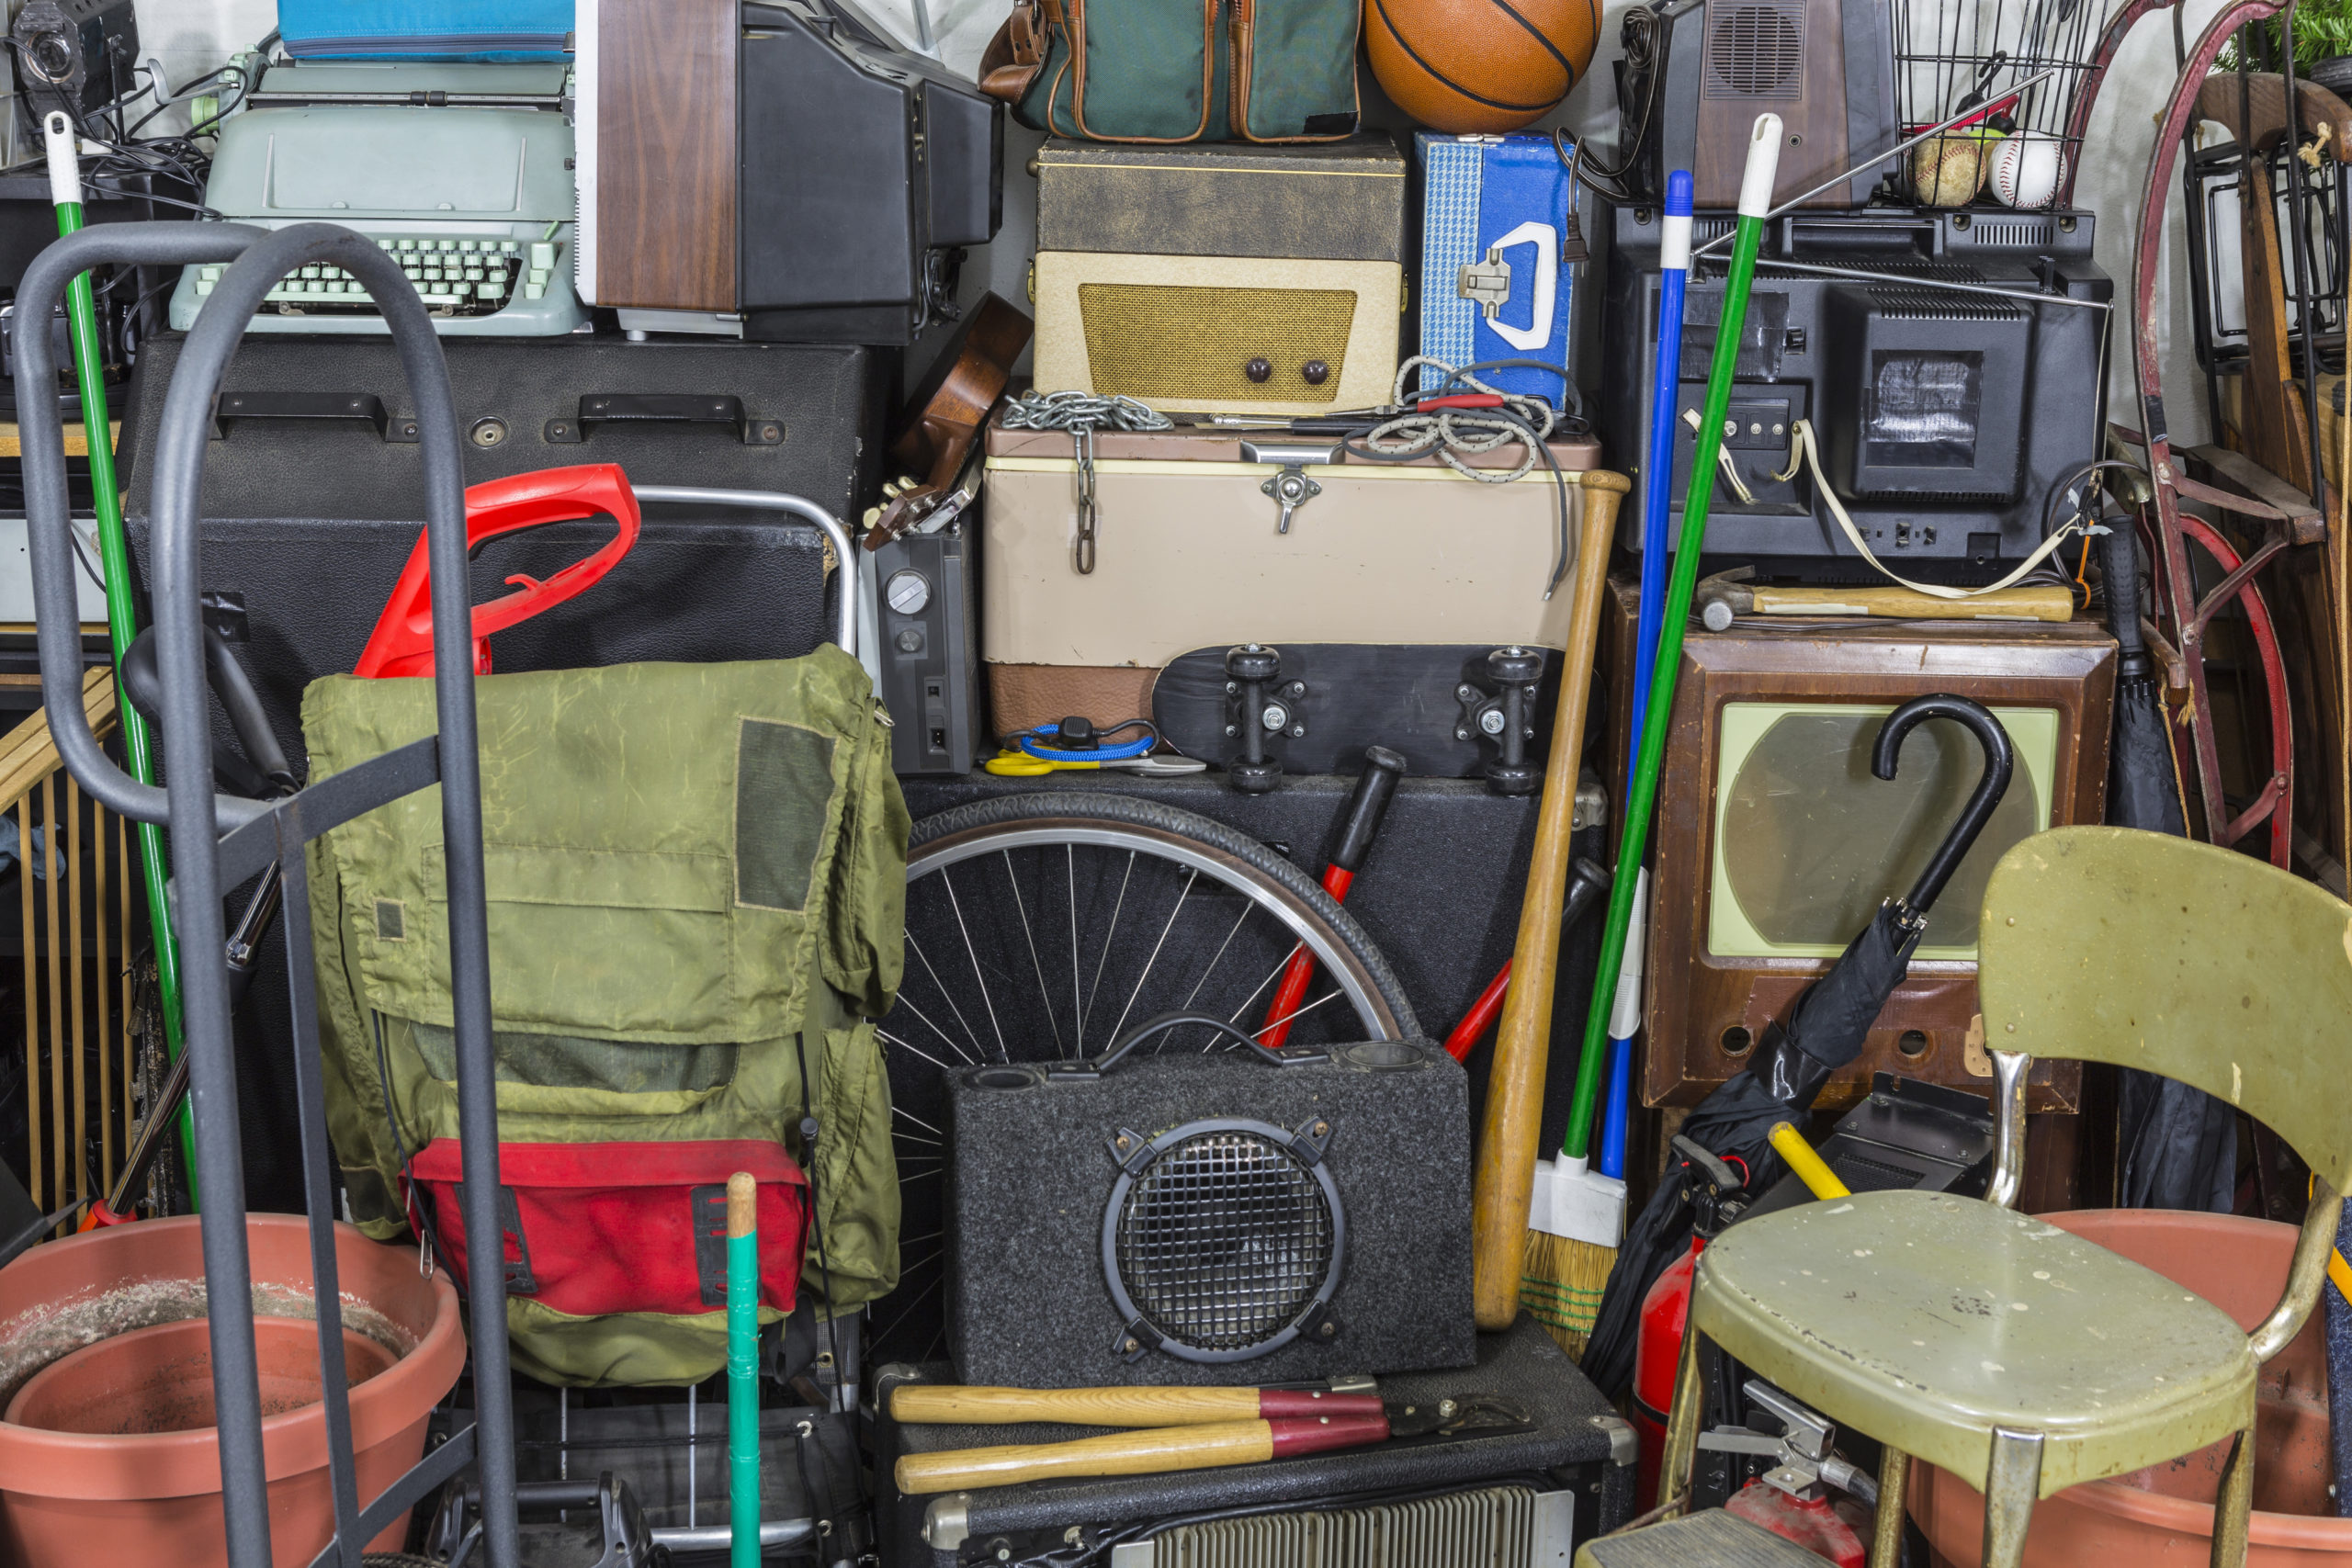 Messy pile of vintage objects.